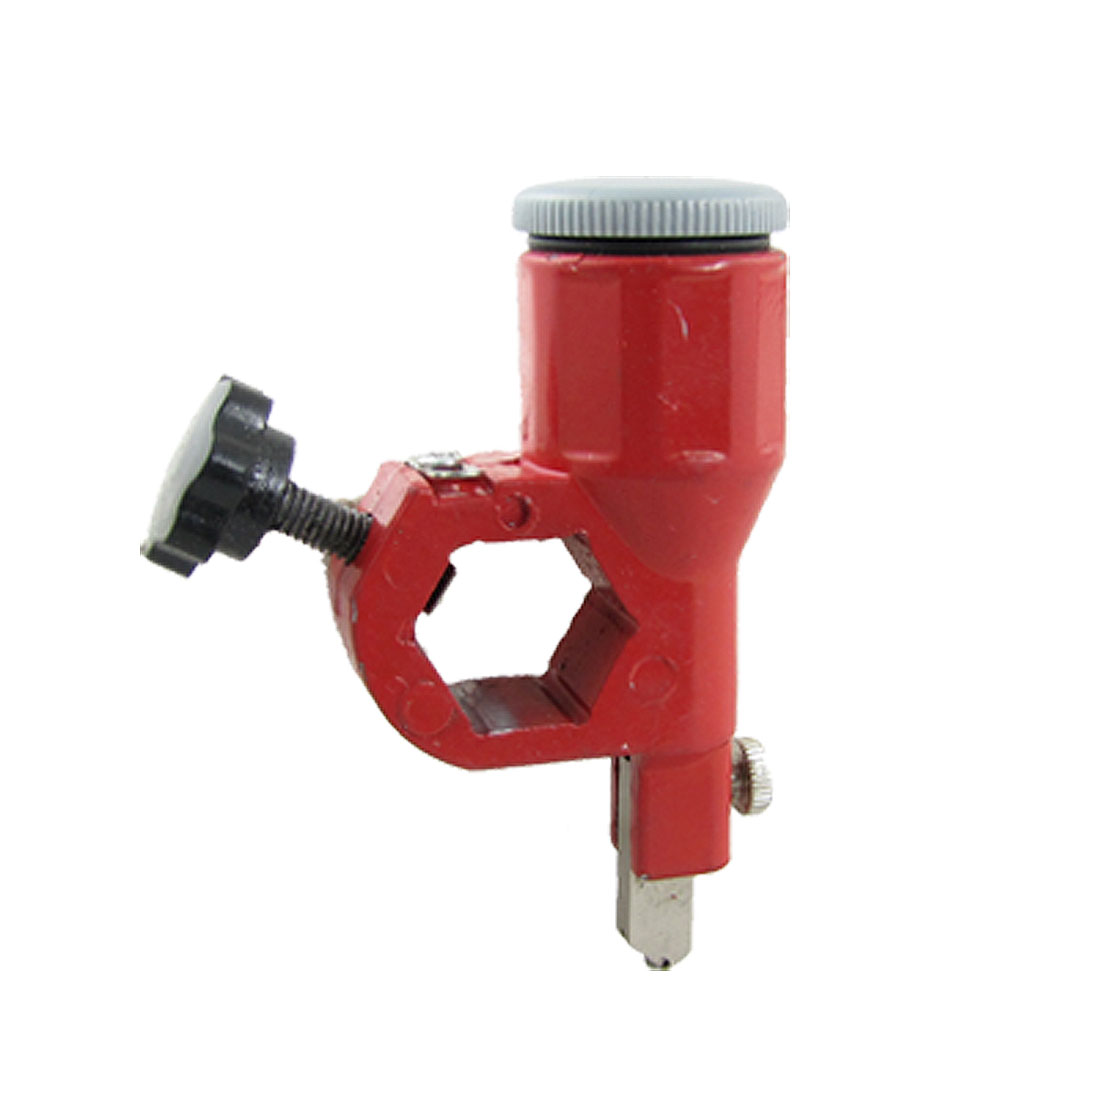 Replacement Metal Cutting Head for T Type Glass Cutter Hjocd